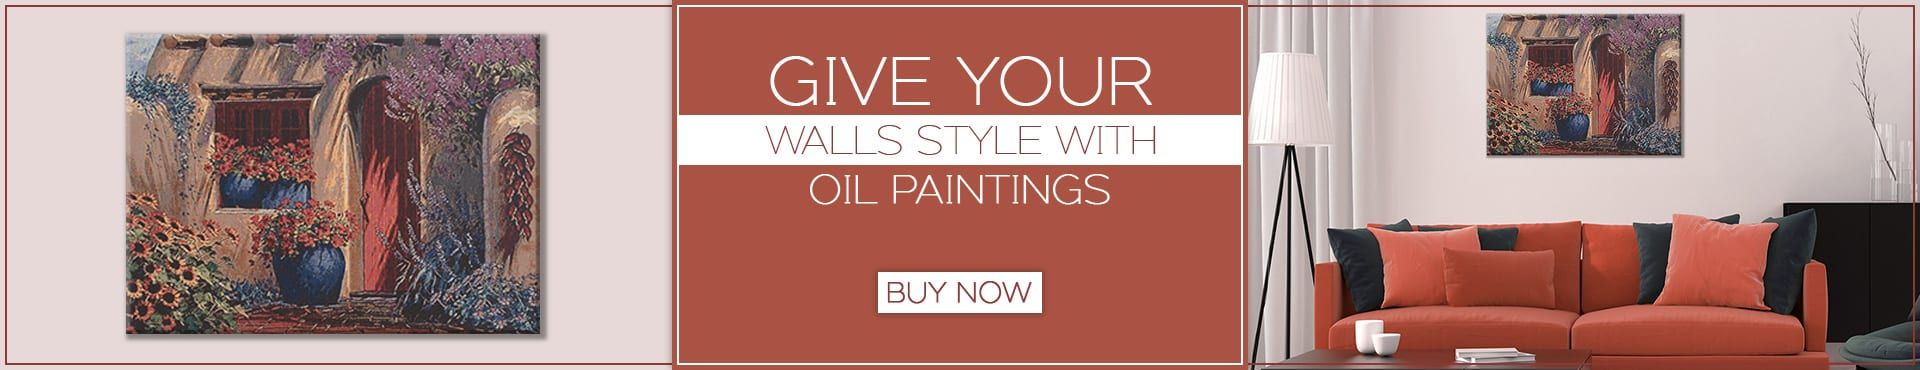 Give your WALLS STYLE with oil paintings